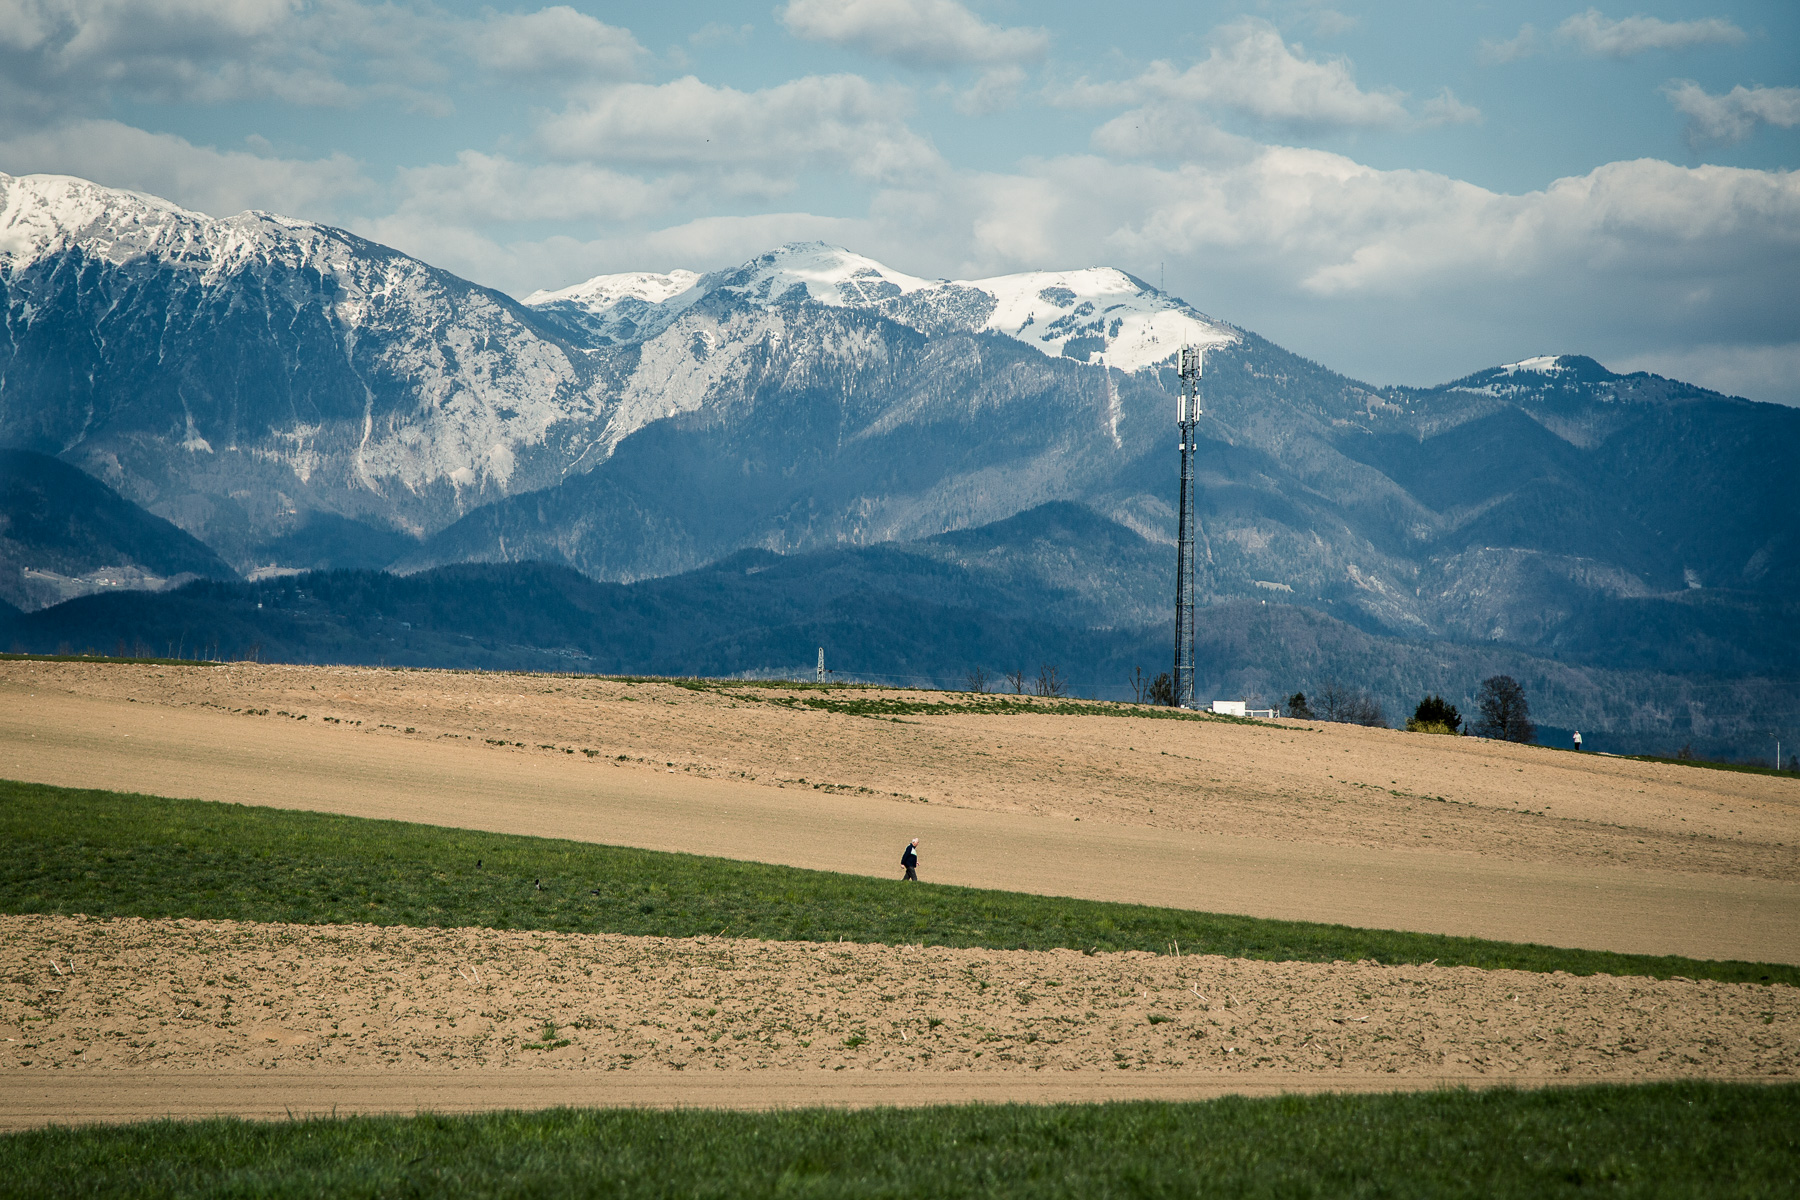 A man walks across a field on the outskirts of Kranj, Slovenia, on April 4, 2020.